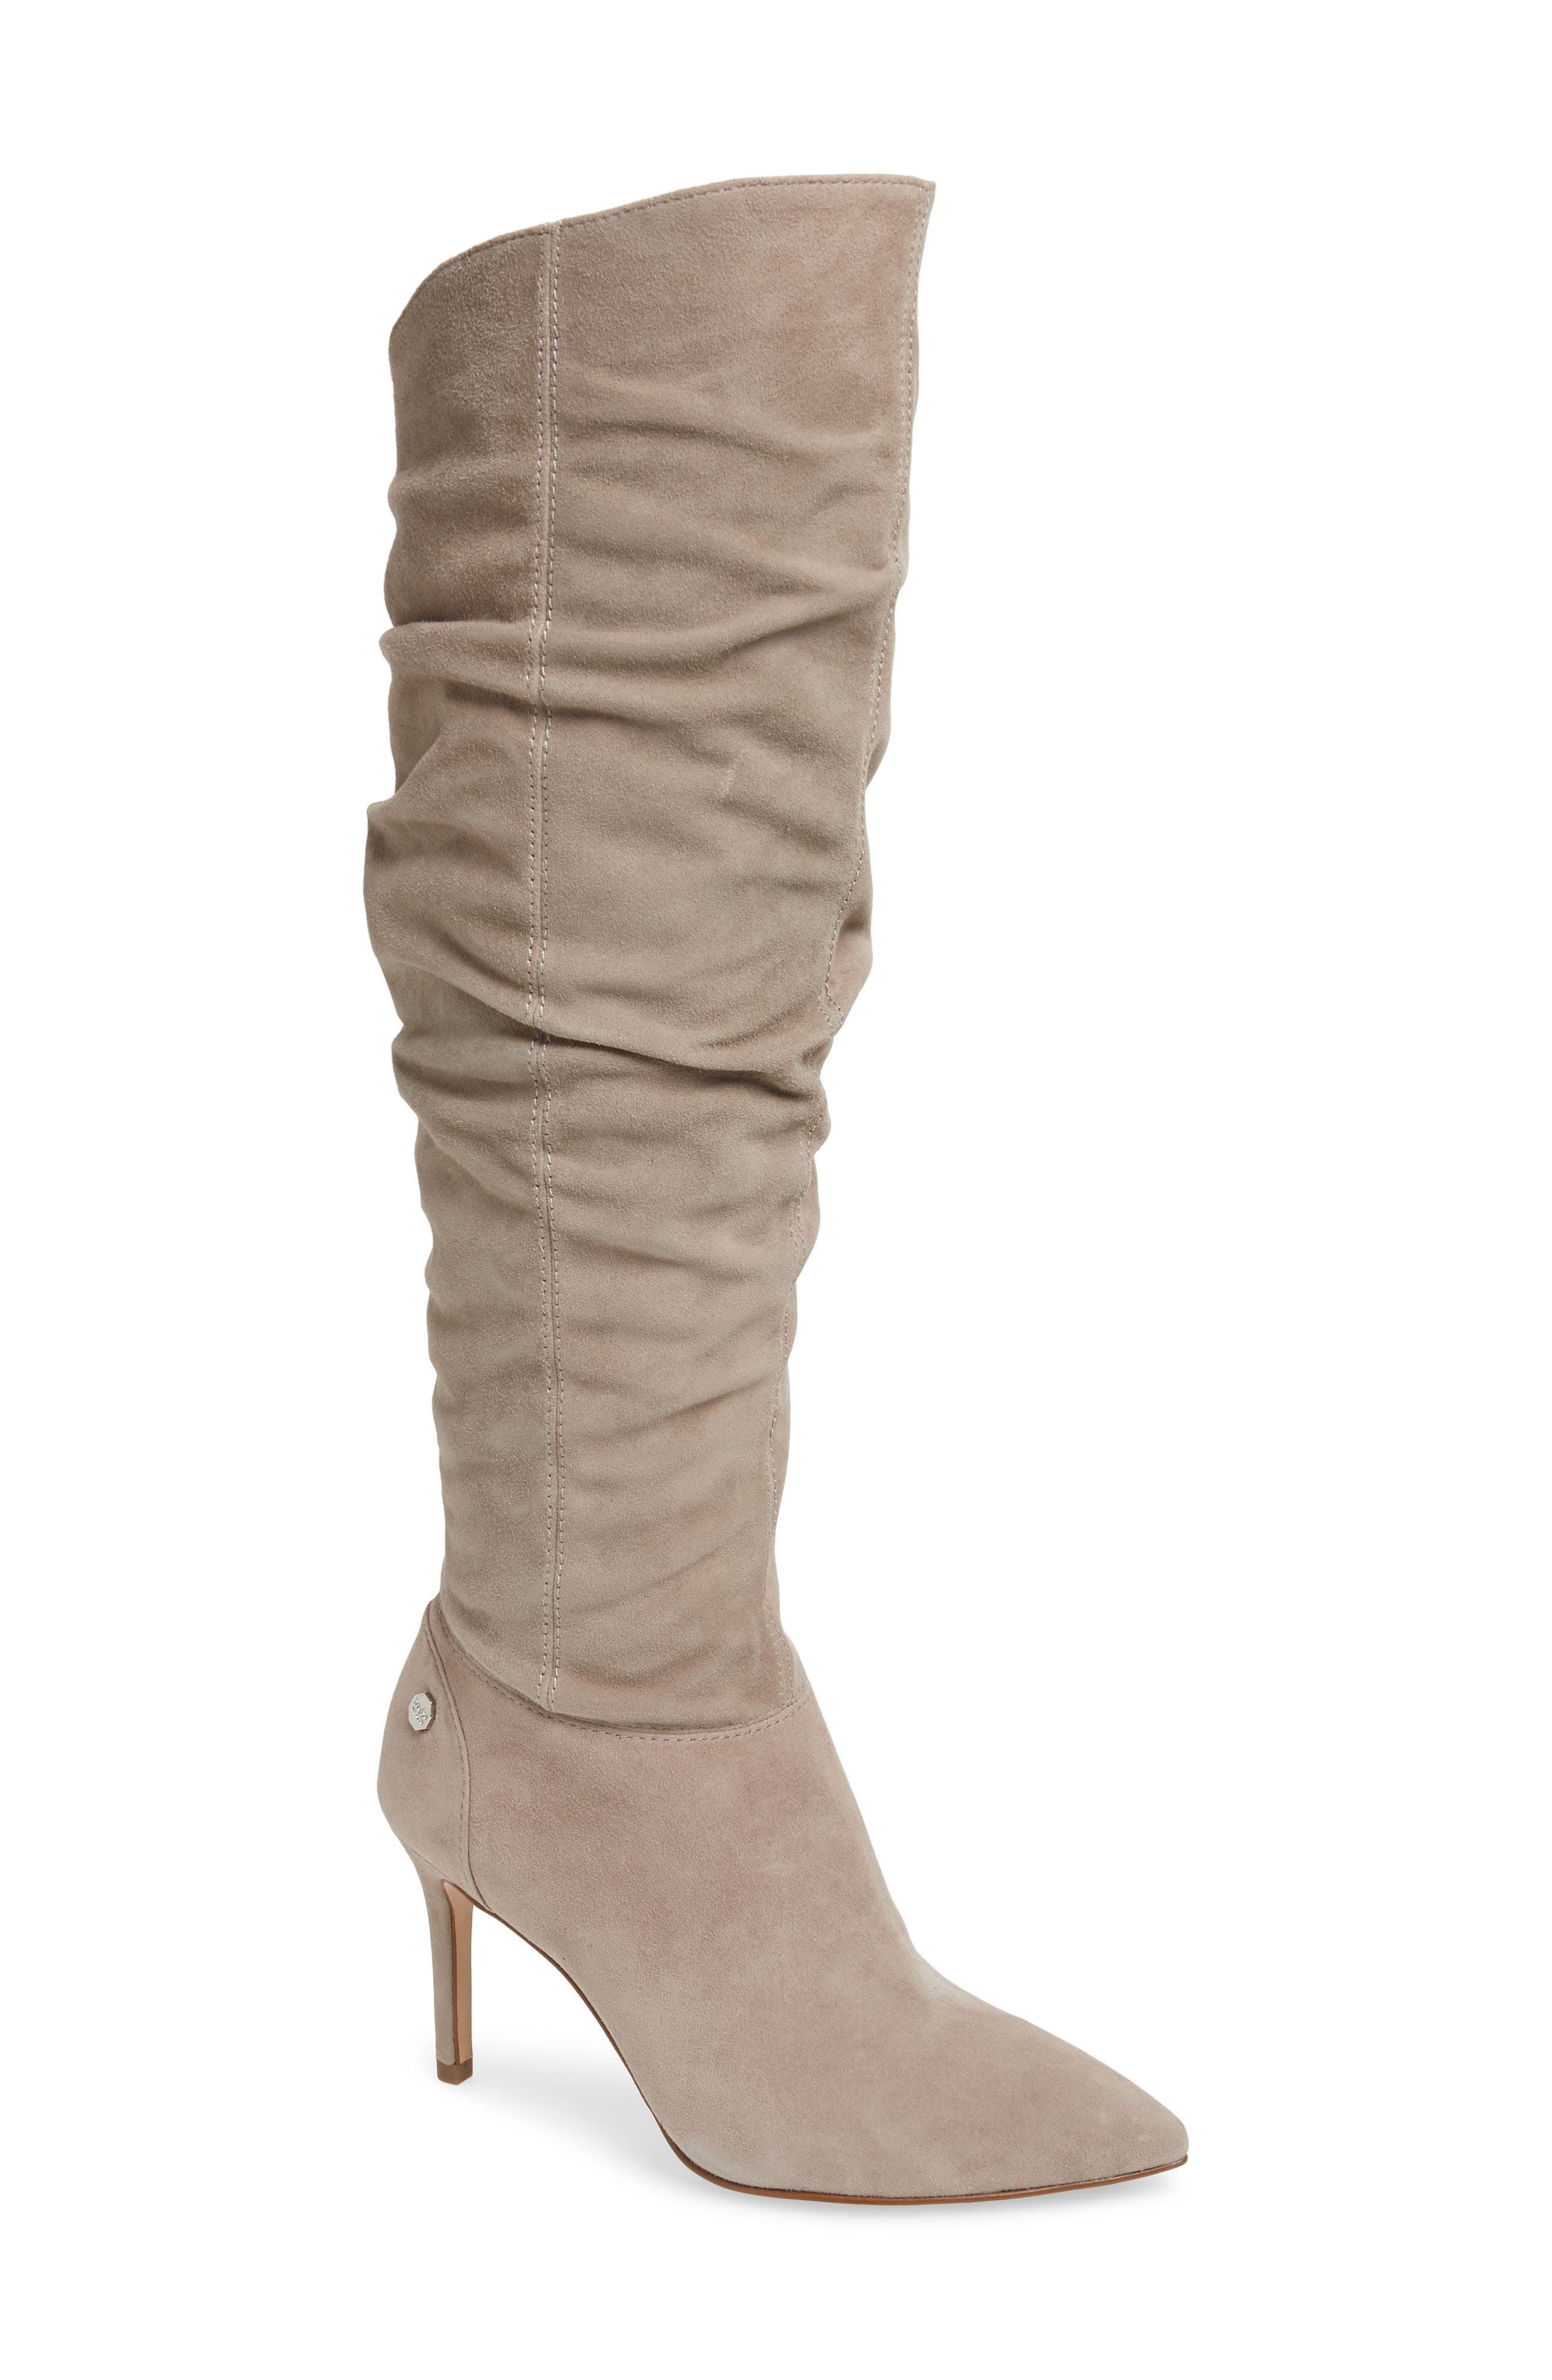 Louise Et Cie Saige Knee High Boot, Pink